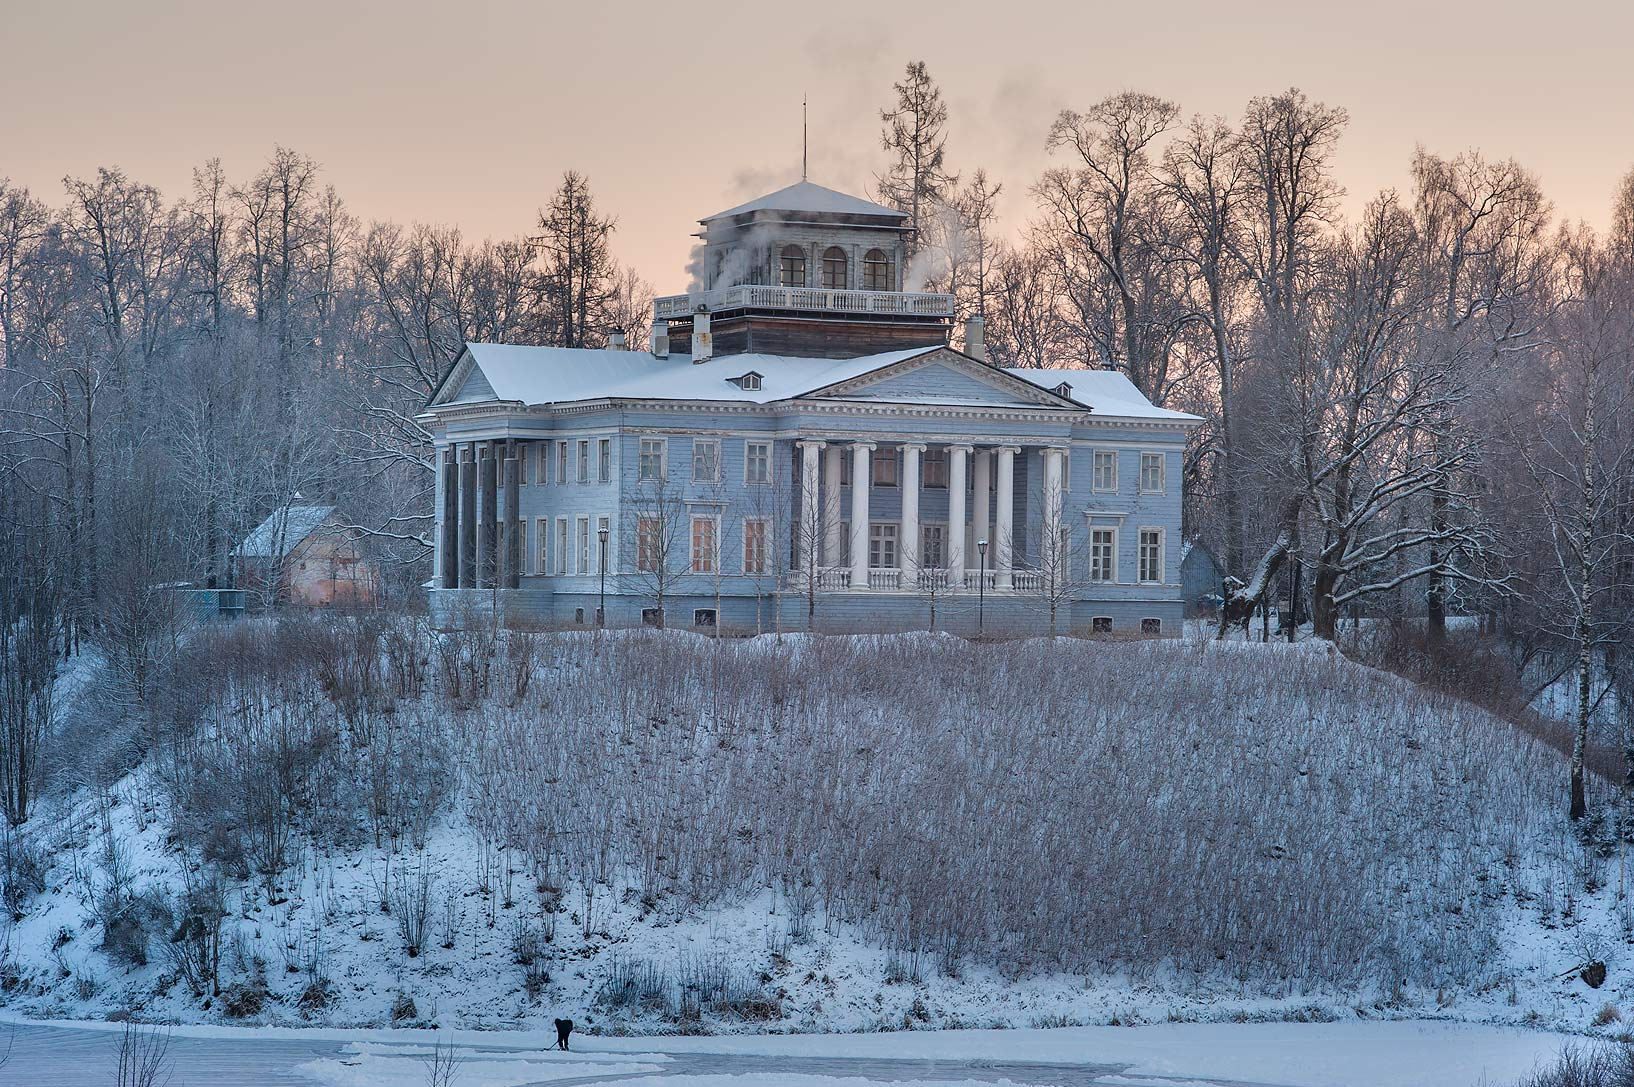 Nabokov museum in Rozhdestveno Village. Gatchina District of Leningrad Region, Russia